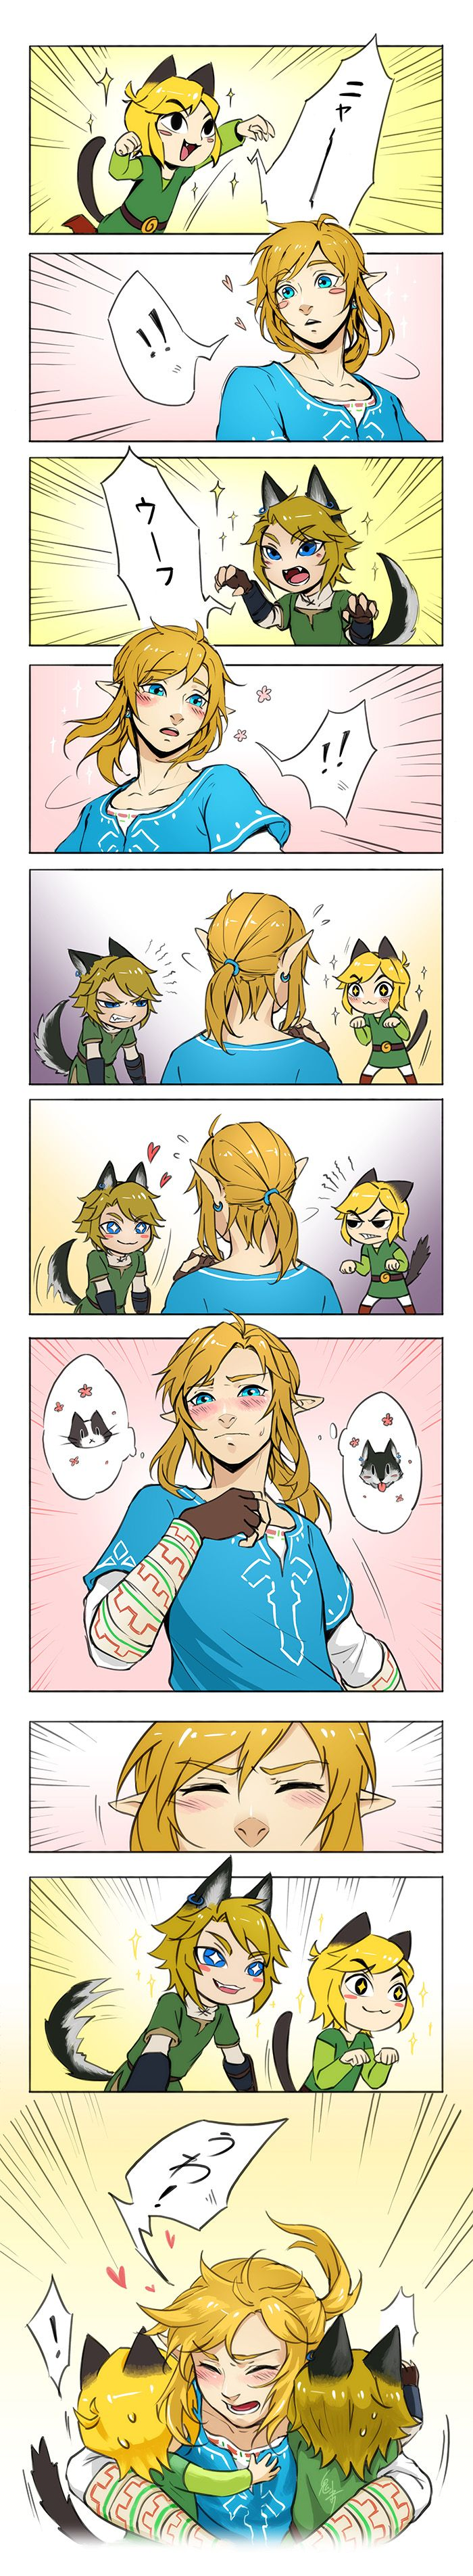 Even liking more wolves than cats... Id react as him ~u~